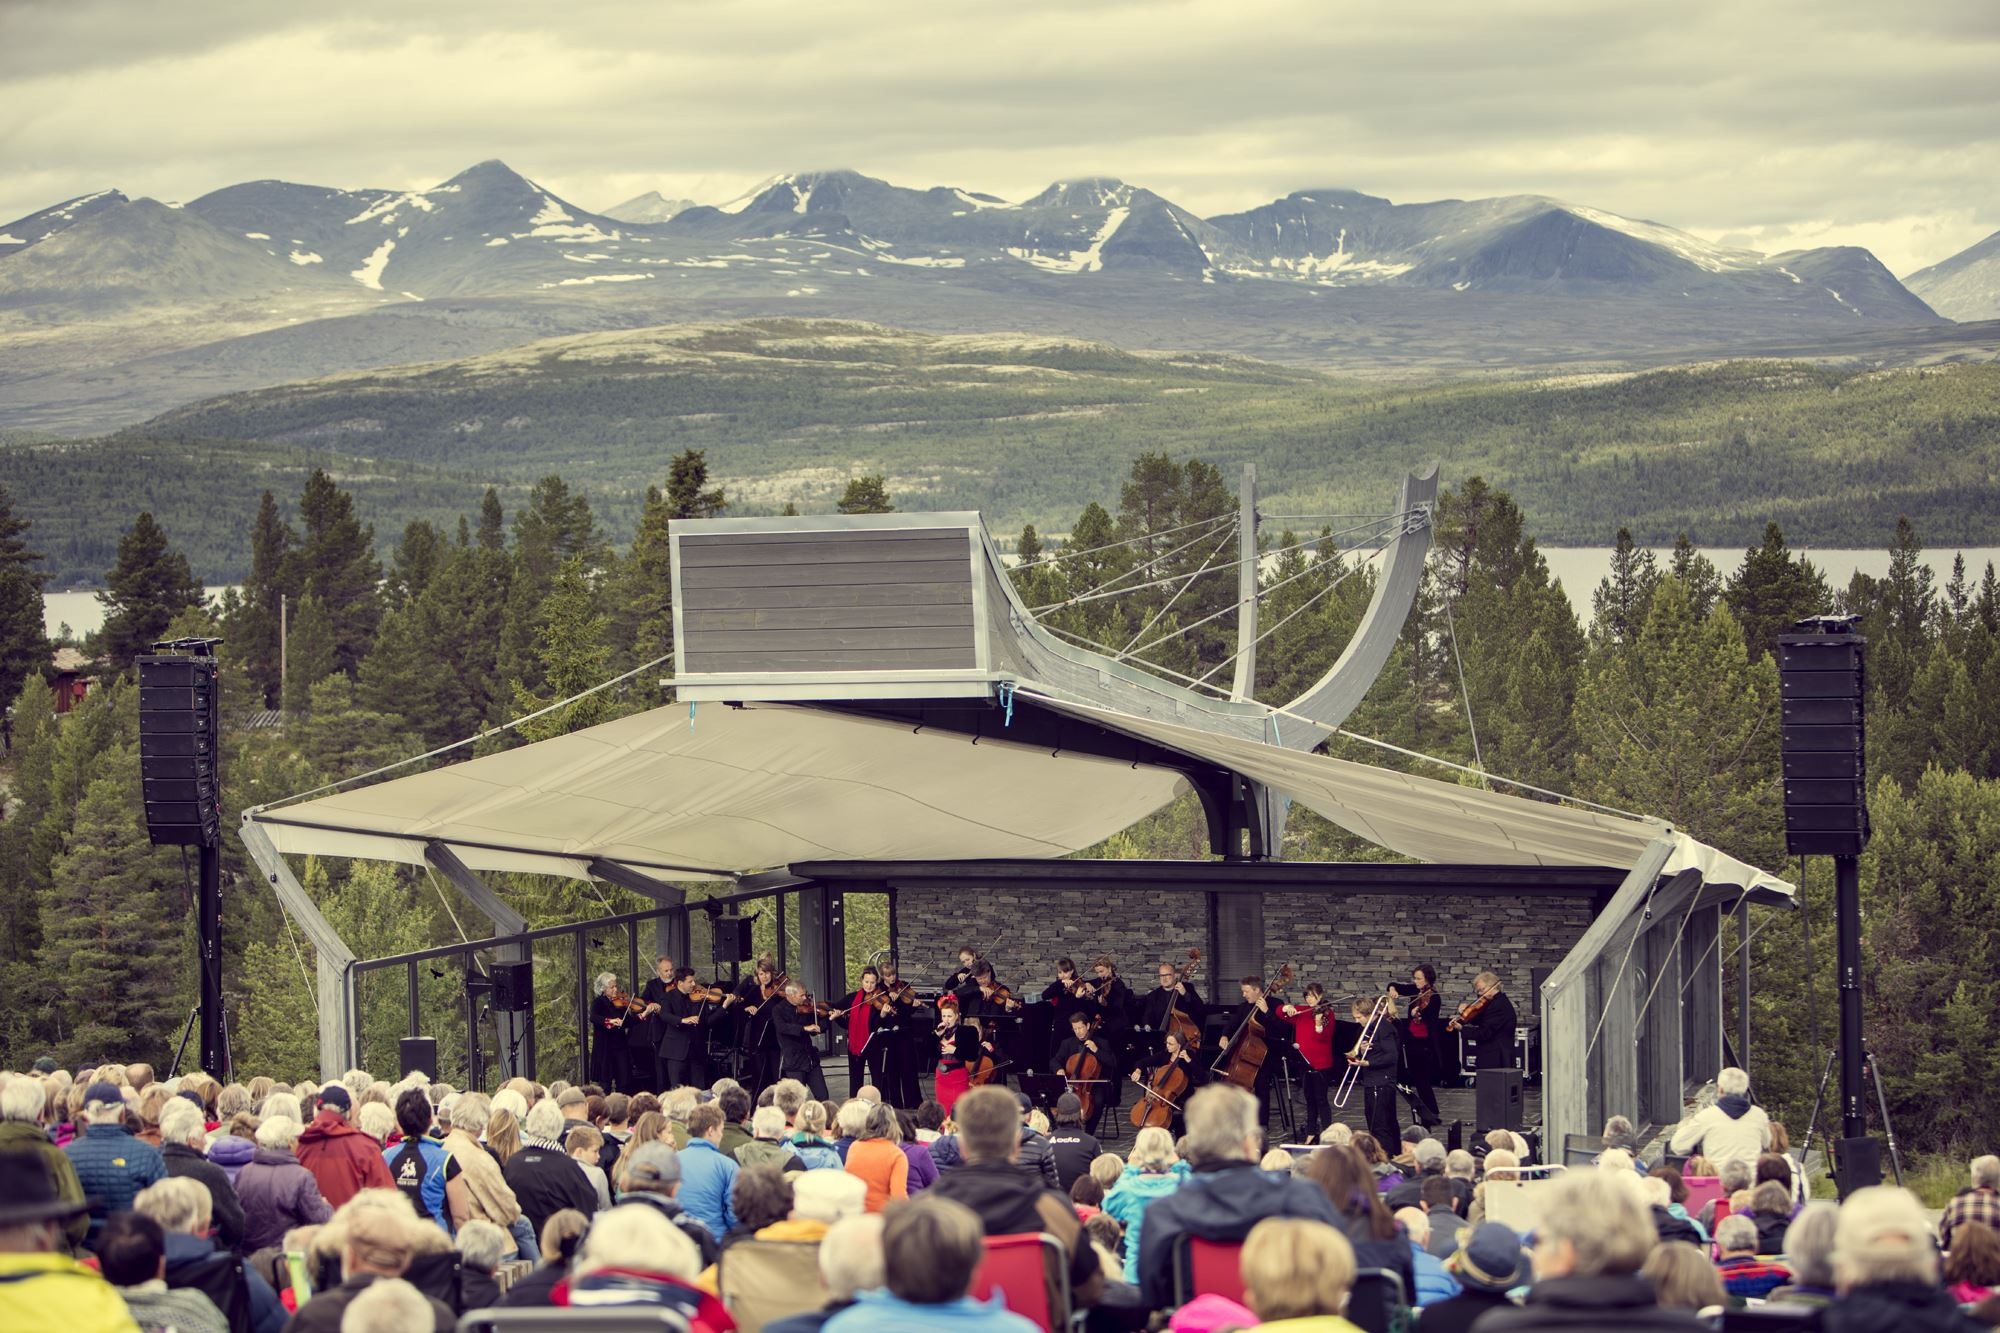 The mountain concert by the Rondane mountains